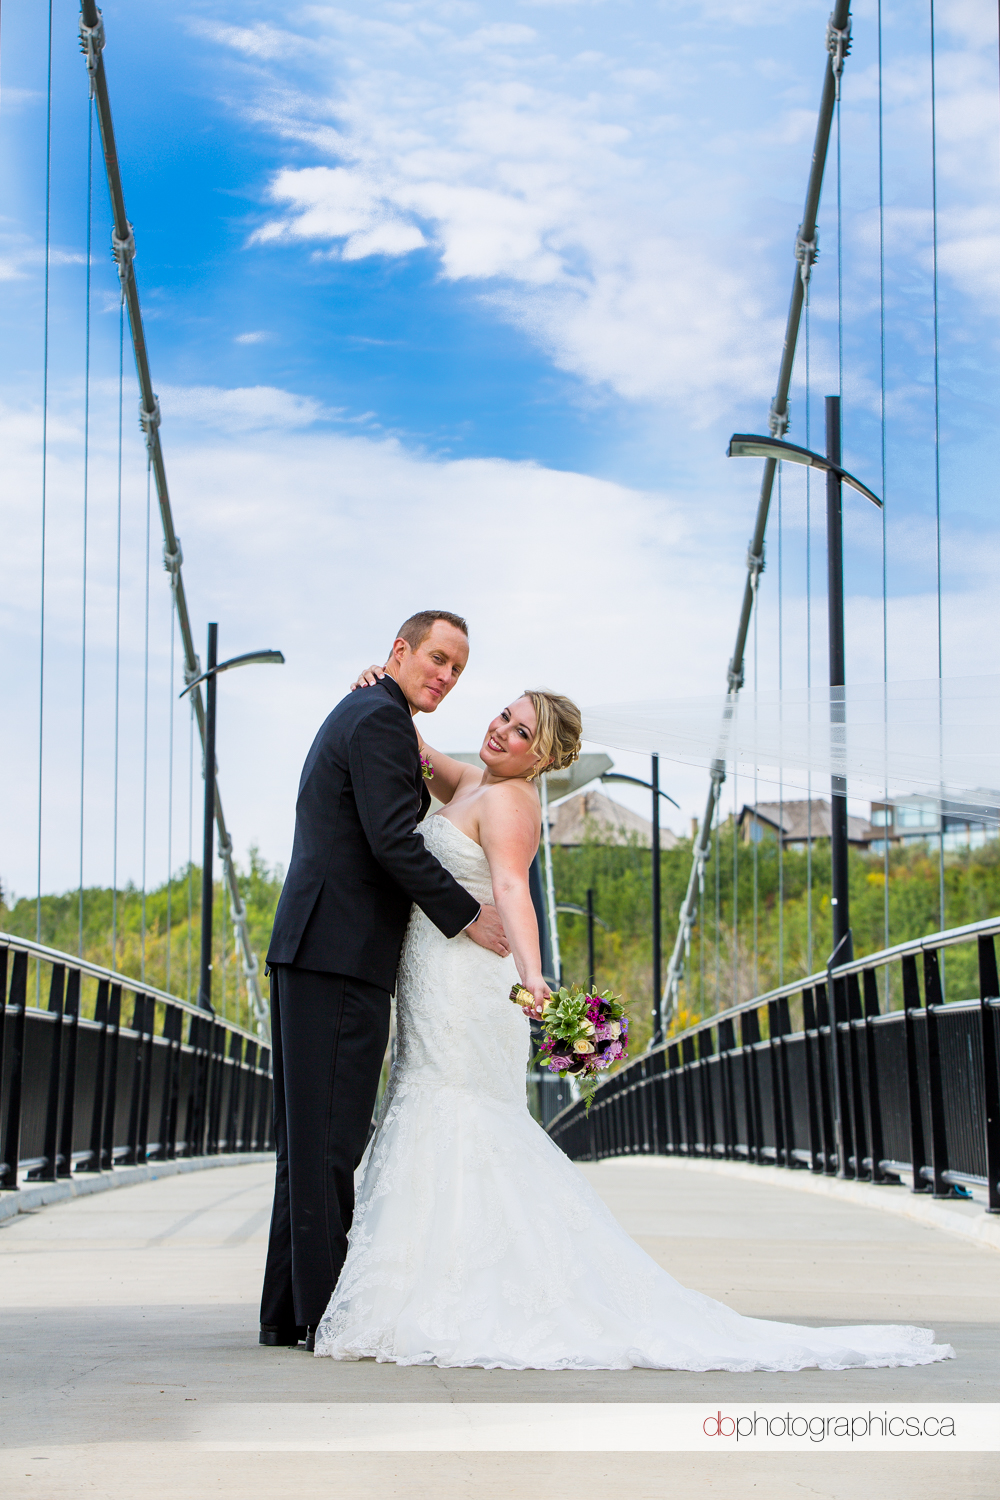 Lauren & Tim's Wedding - 20150829 - 0380.jpg